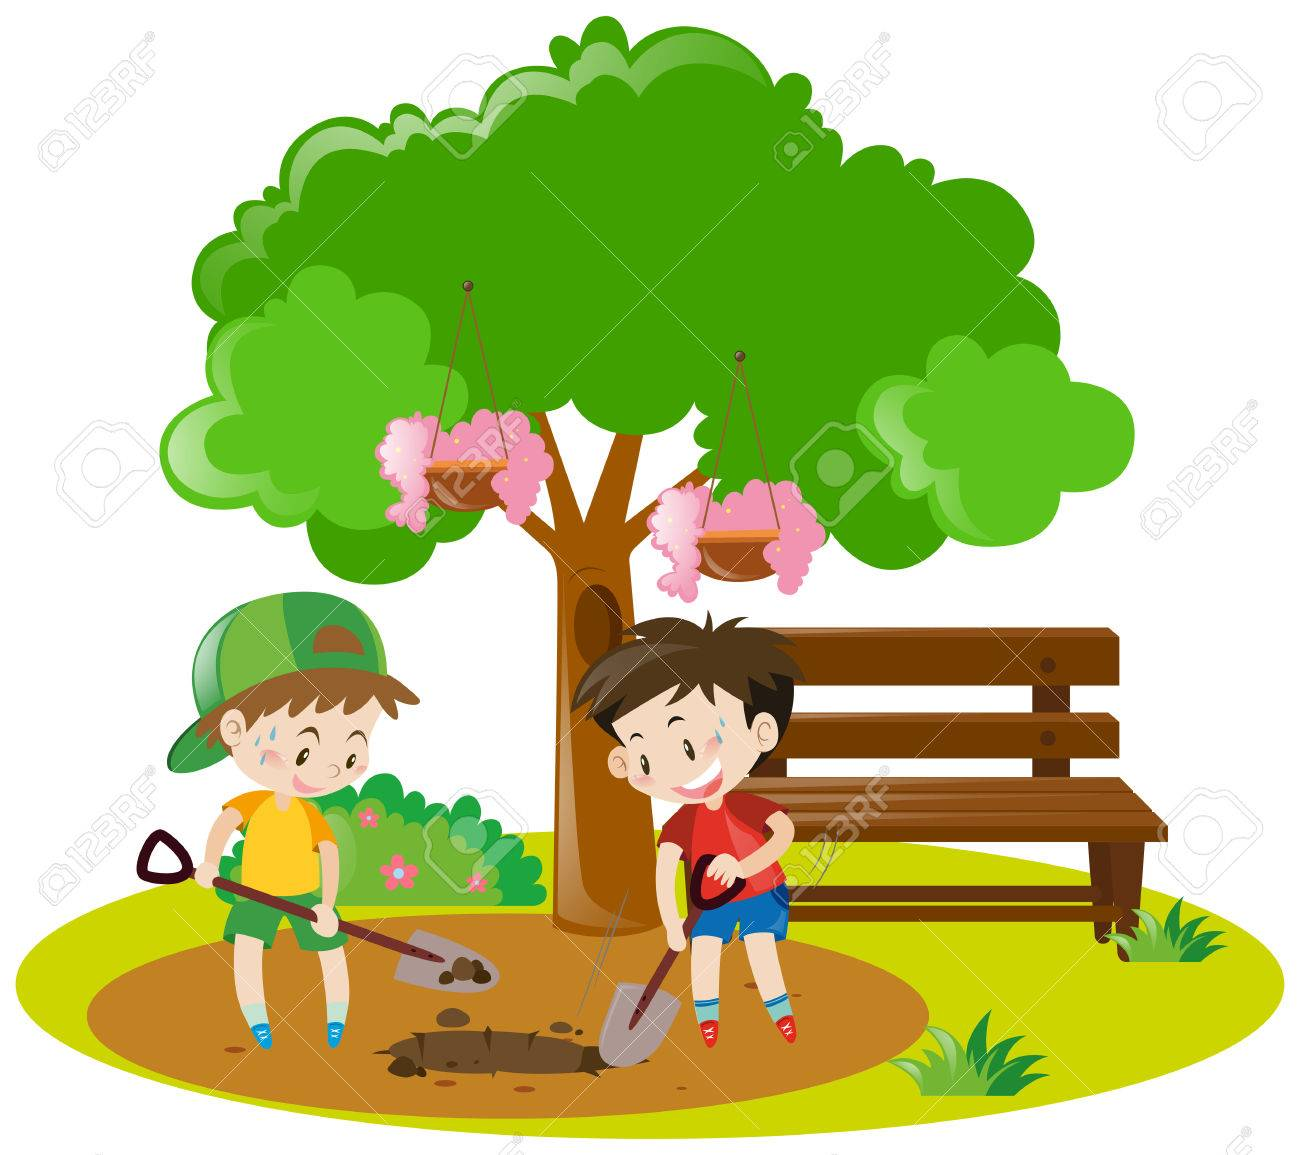 two boys digging hole in garden illustration royalty free cliparts rh 123rf com dog digging clipart digging clipart